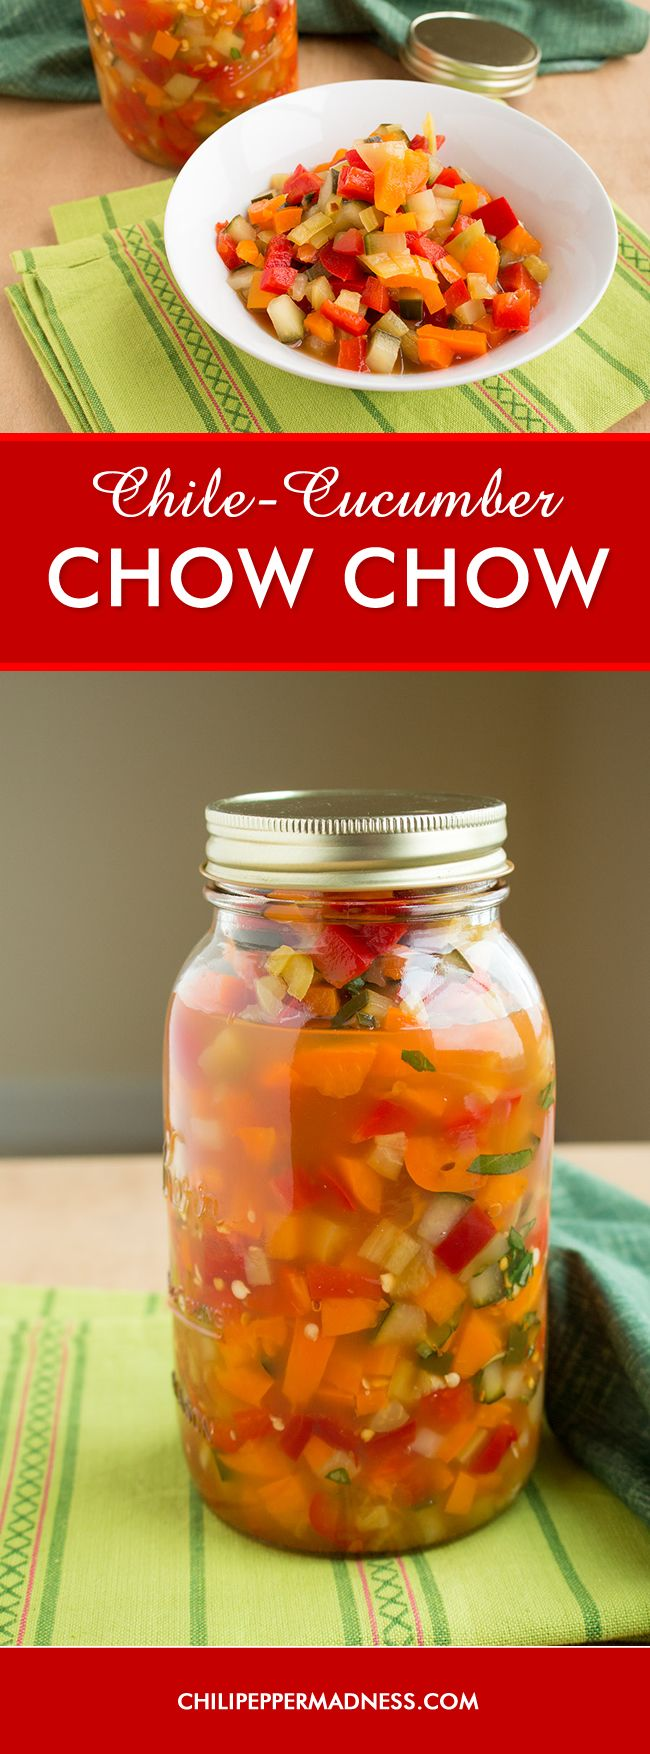 Chile-Cucumber Chow Chow - Chow Chow is a quick pickled relish made with a combination of vegetables. Our version includes a mixture of bell and banana peppers along with fresh cucumber and basil. We're ready for Spring!